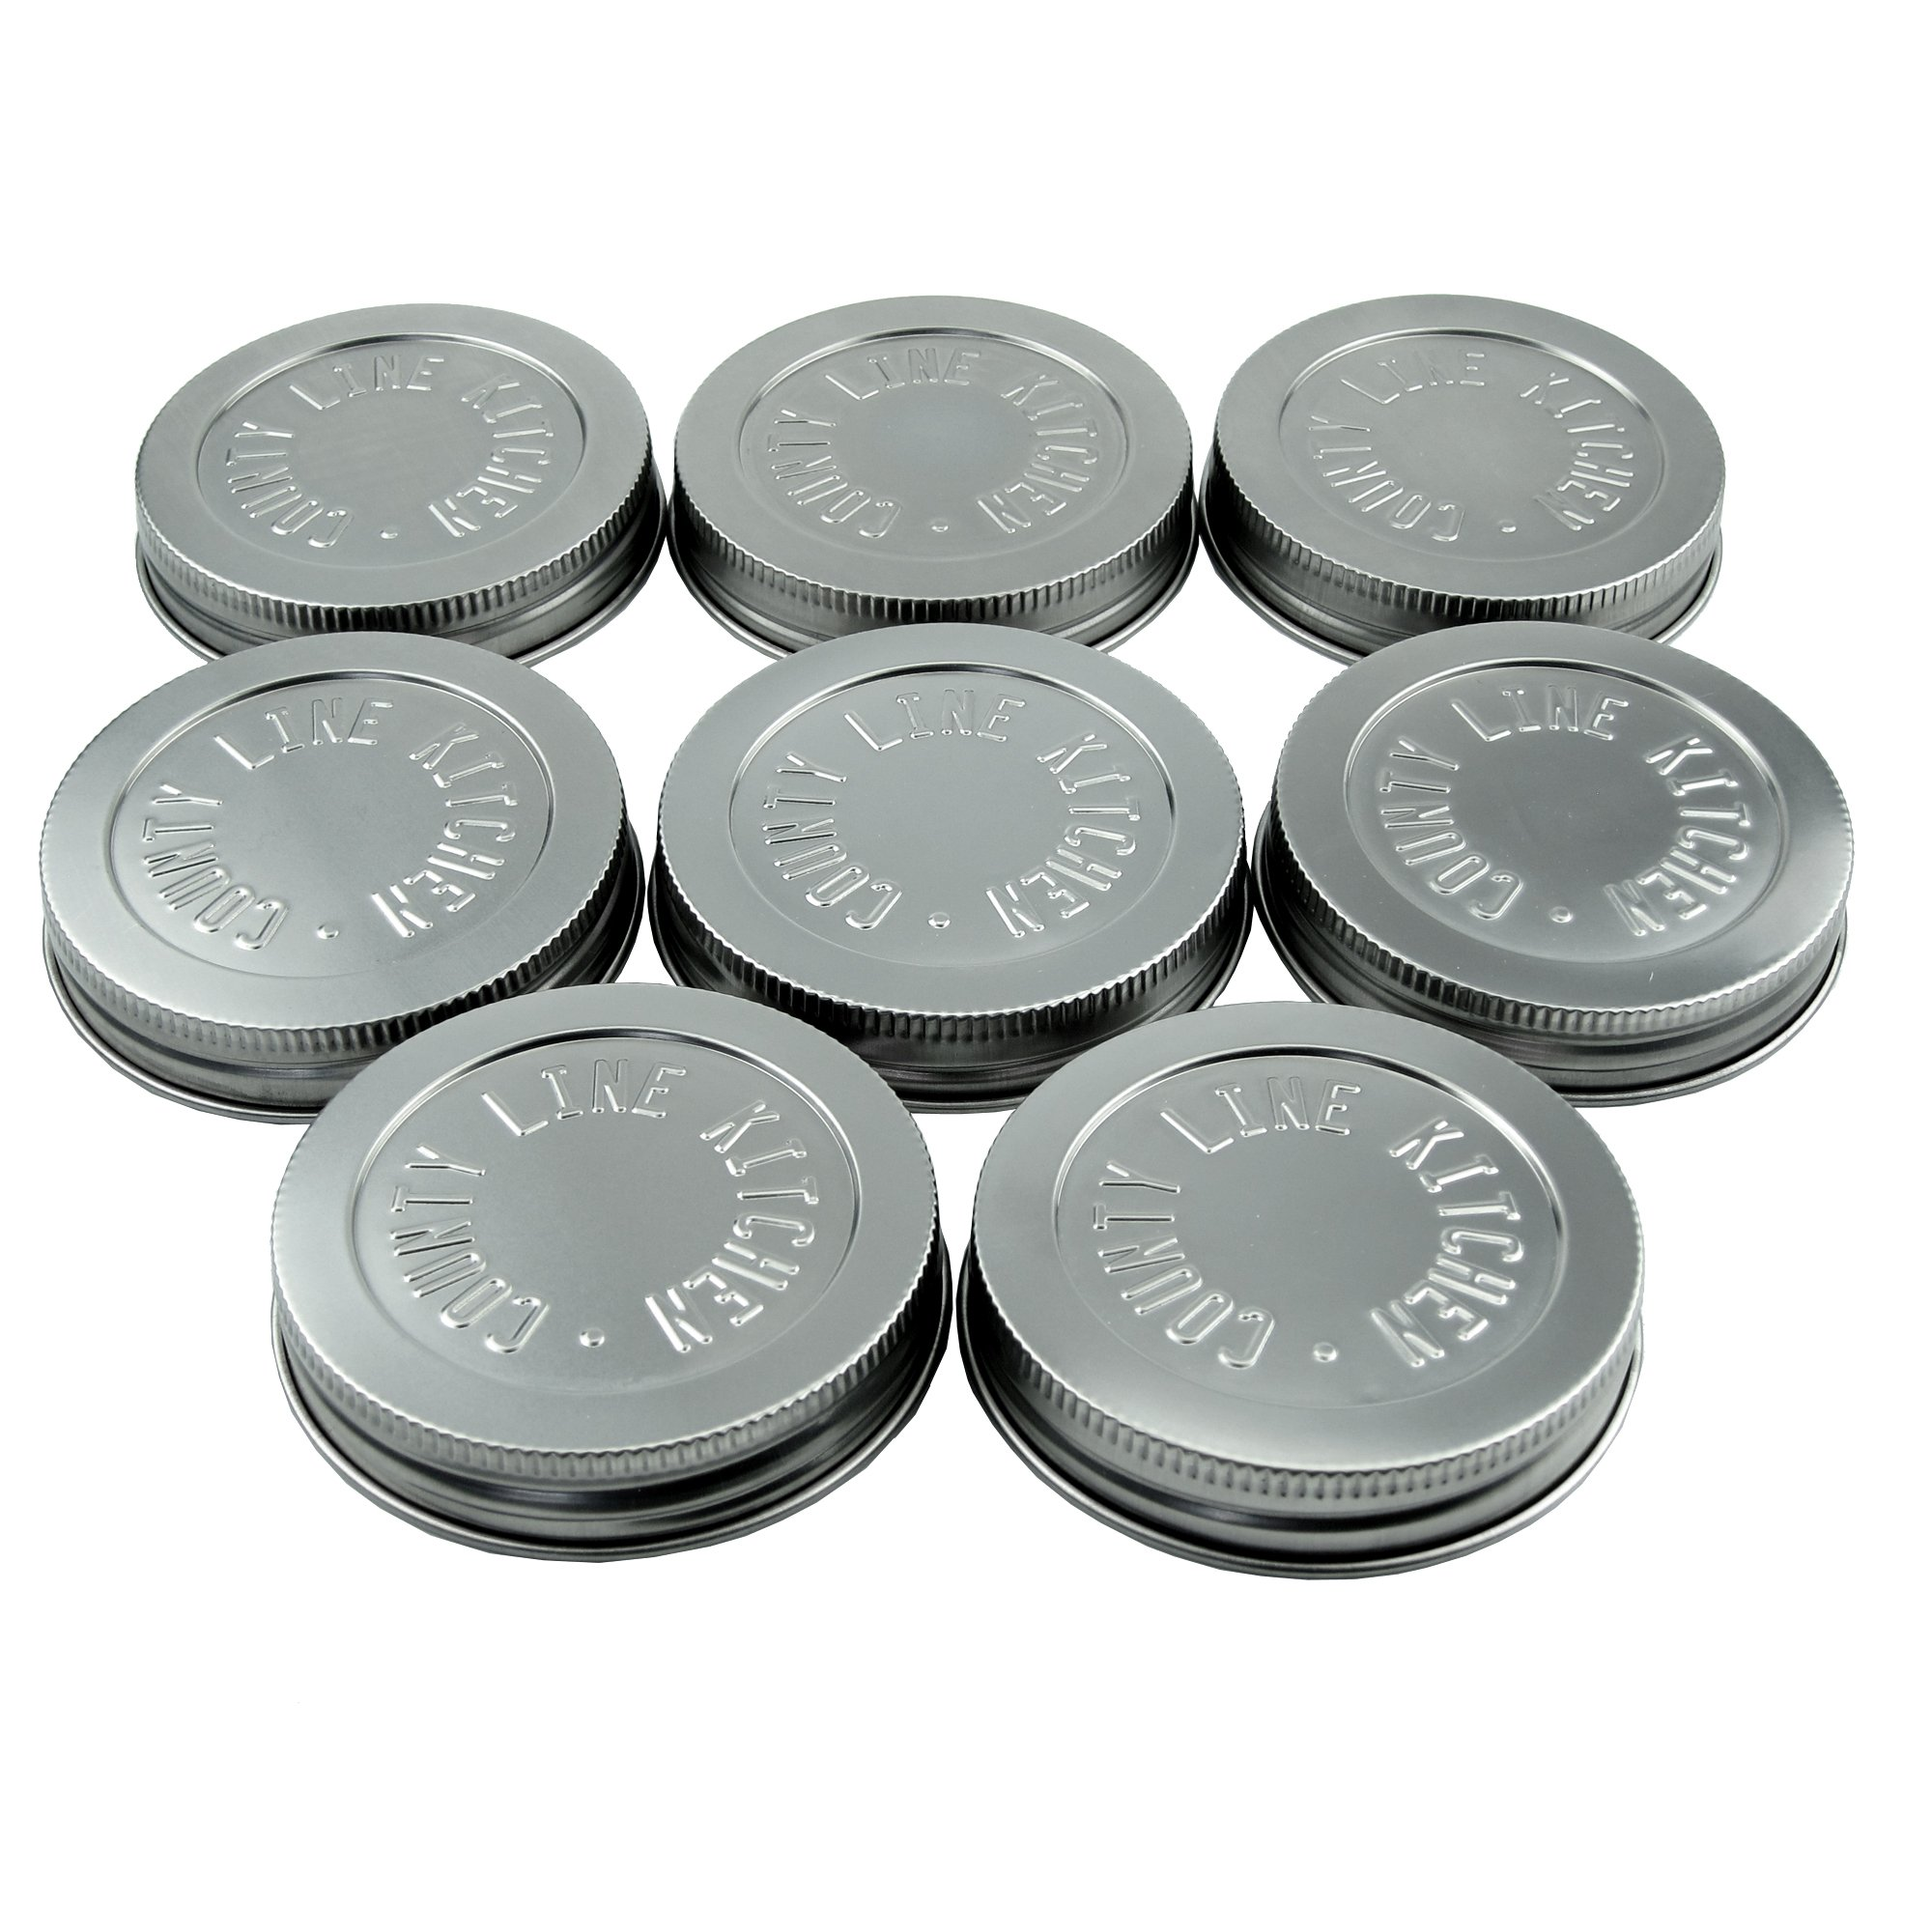 Heavy Duty Stainless Steel Mason Jar Lids by County Line Kitchen with Leak Proof, Easy Opening Seals, Wide Mouth, 8 Pack